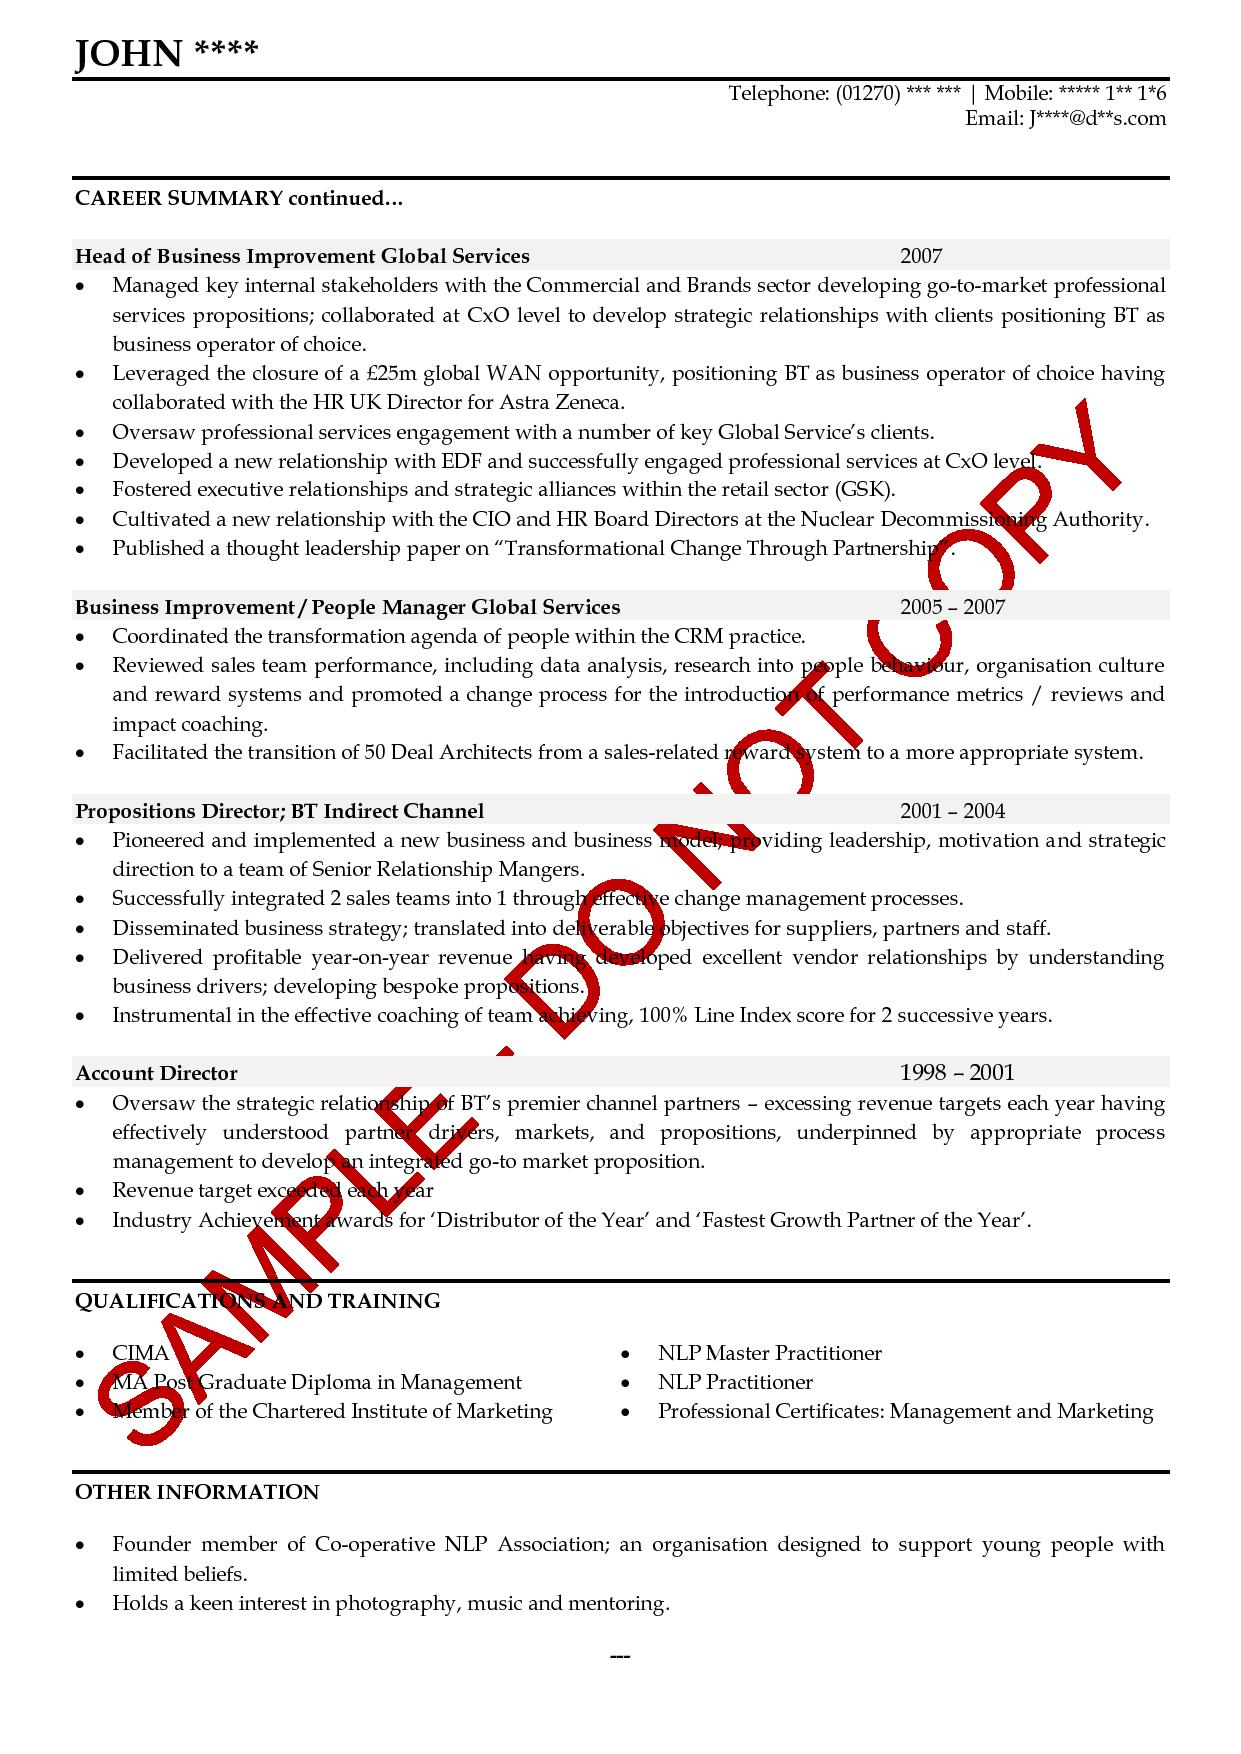 cv help bbc resume pdf cv help bbc how to write a successful cv bbc news executive cv examples the cv